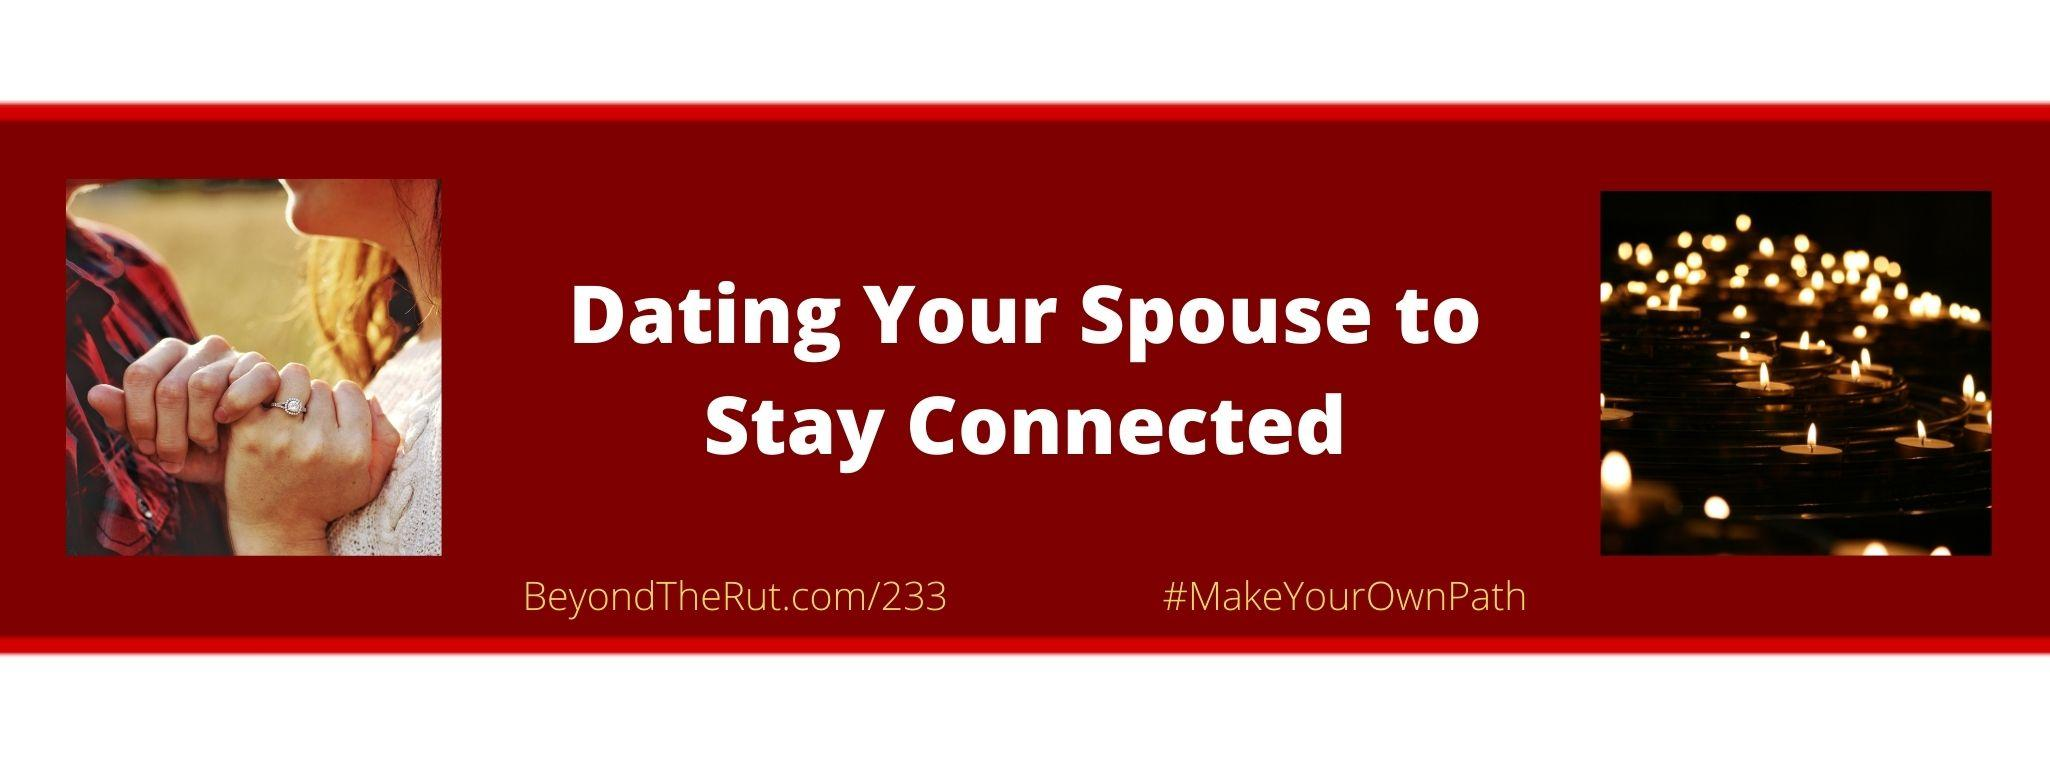 dating your spouse beyond the rut